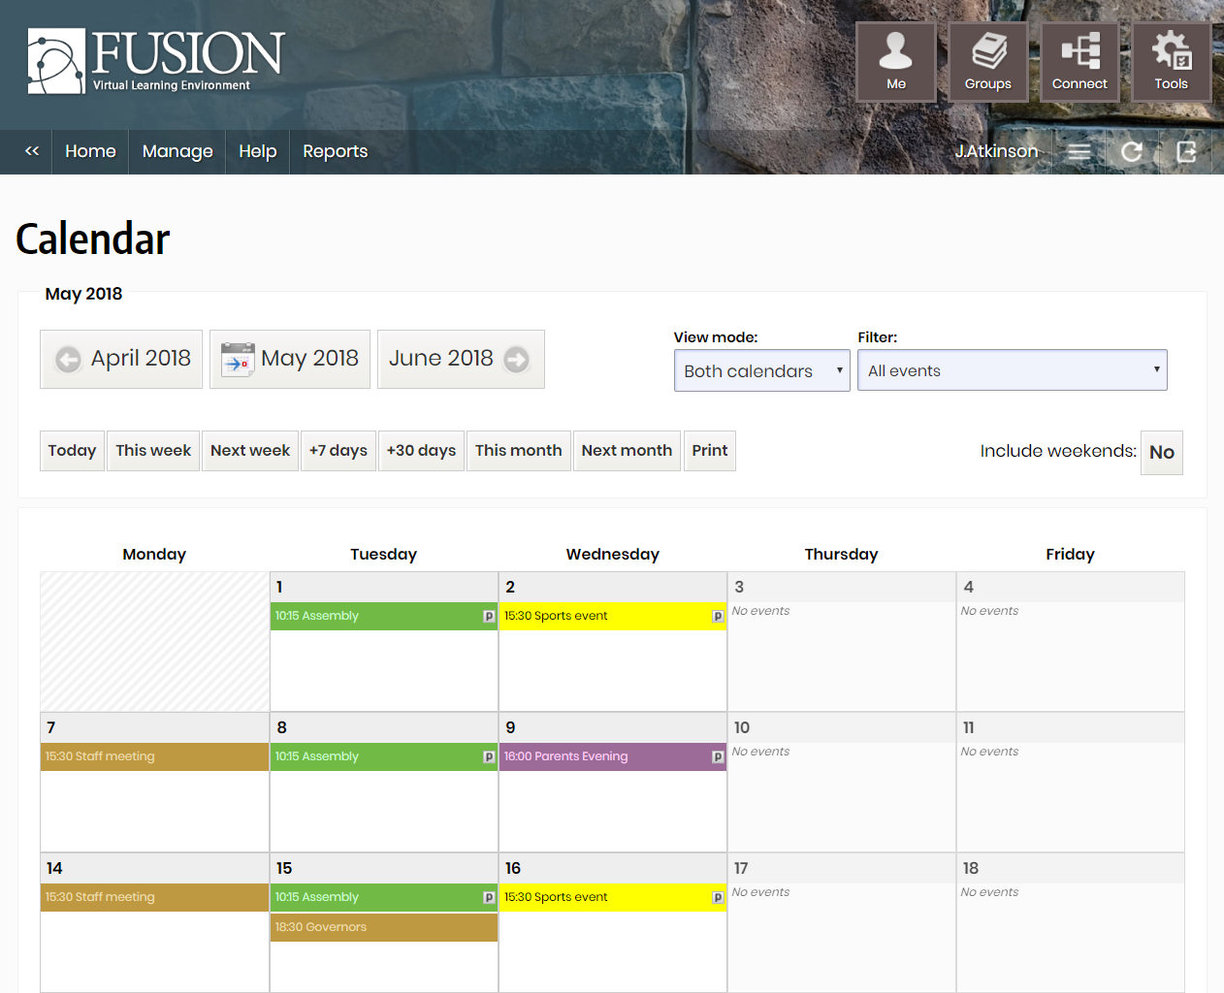 A typical school calendar